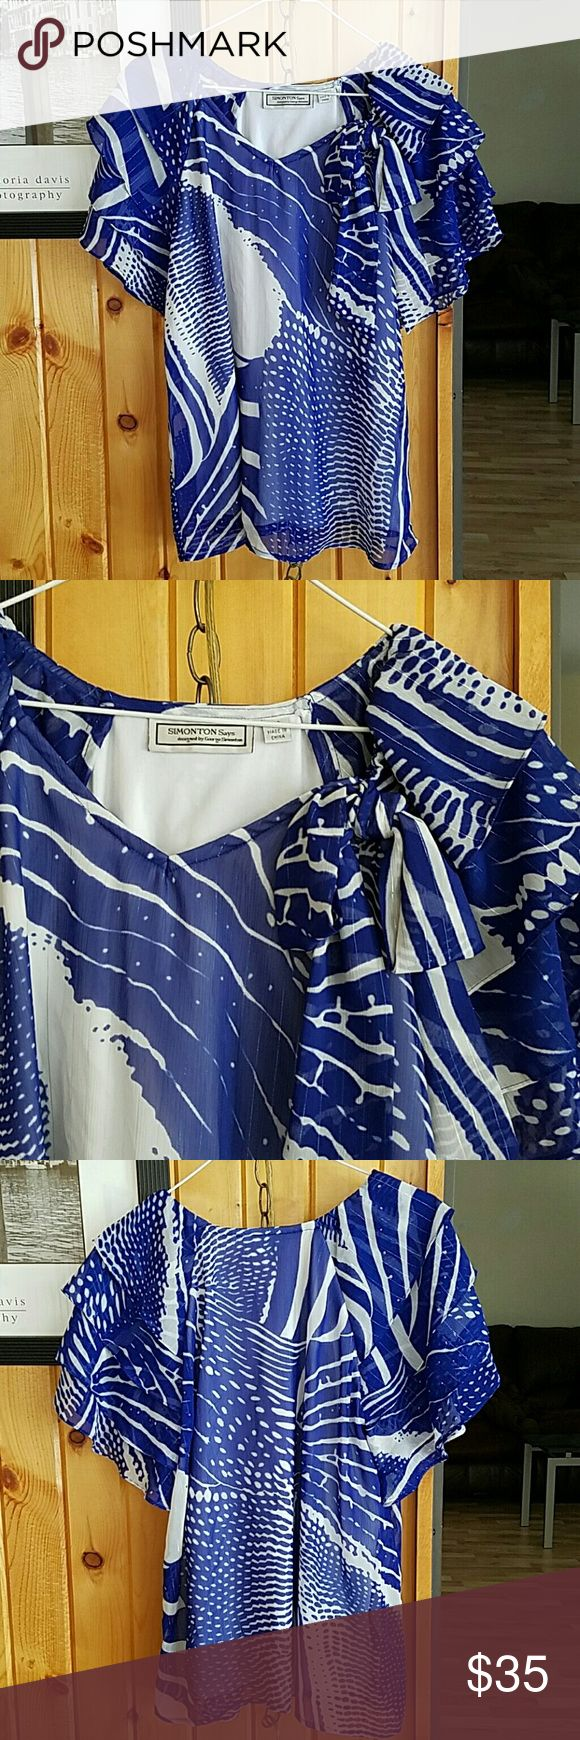 George Simonton blue and white ruffle top George Simonton blue and white ruffle top. Chiffon with metallic threading. Ruffle sleeves.  Roomy and lightweight. Oversized fit. Can fit a small.medium.  Excellent condition. George Simonton Tops Tees - Short Sleeve